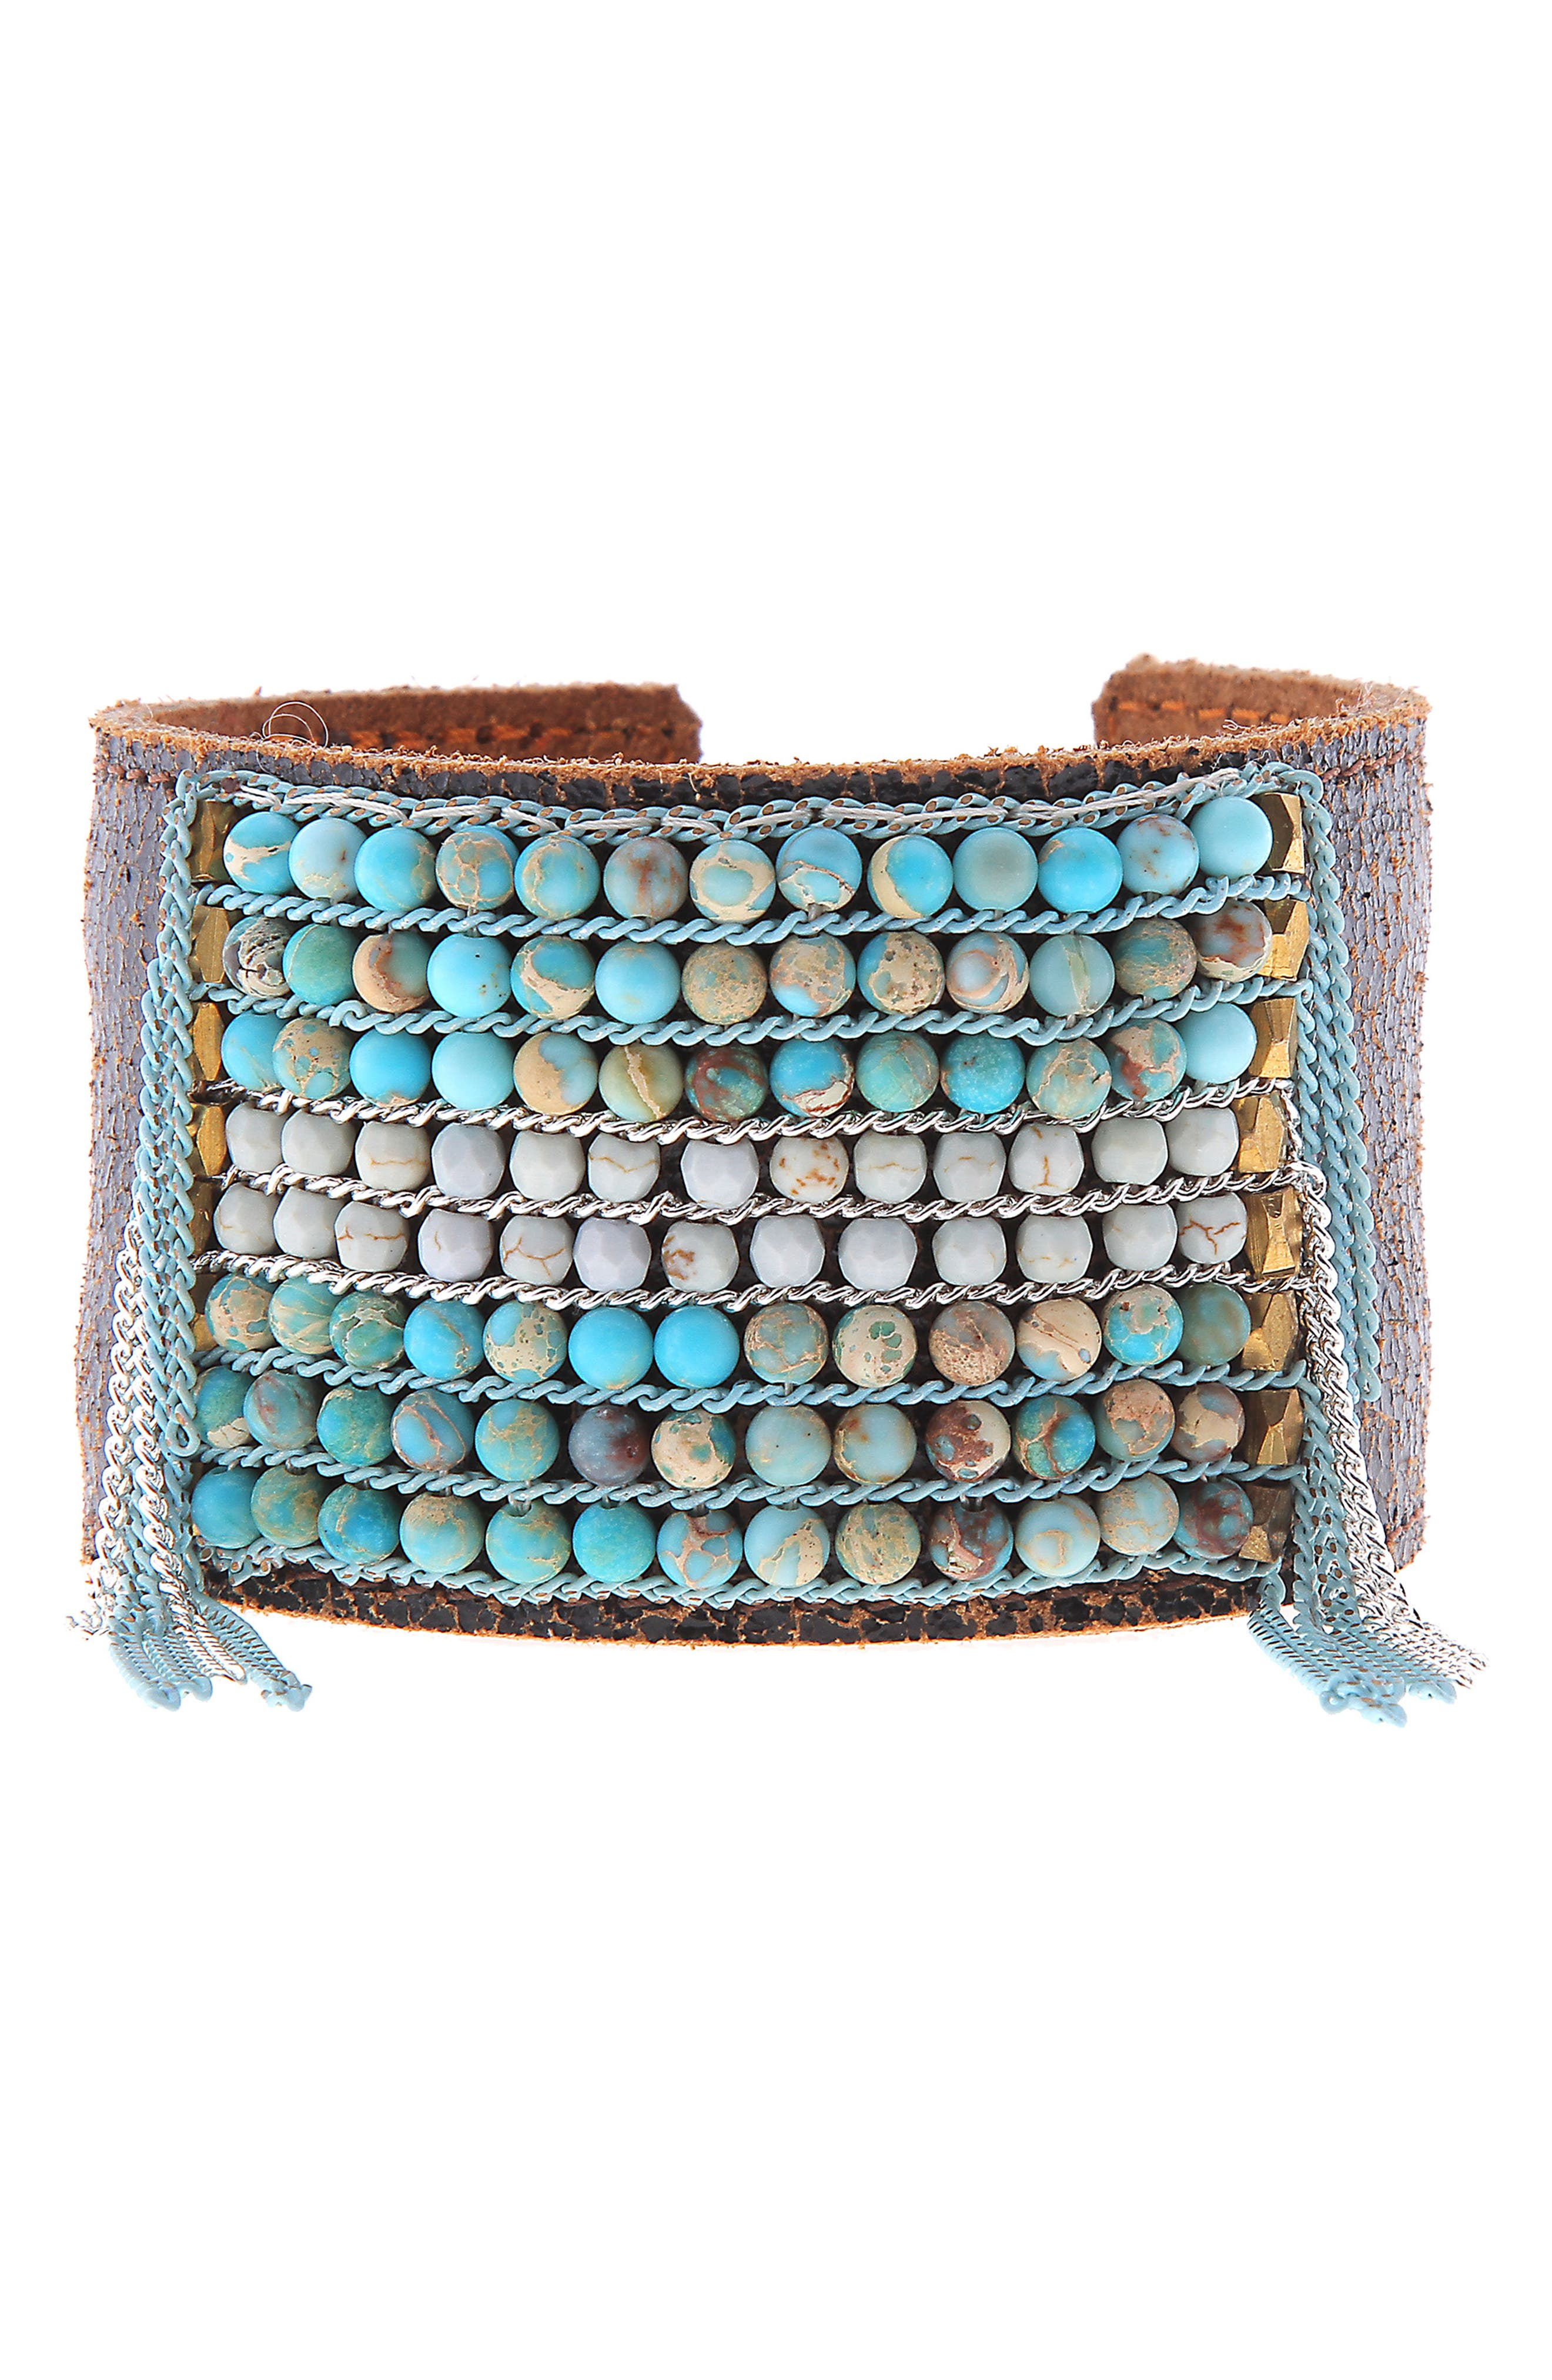 Stone Cuff Bracelet,                         Main,                         color, TURQUOISE